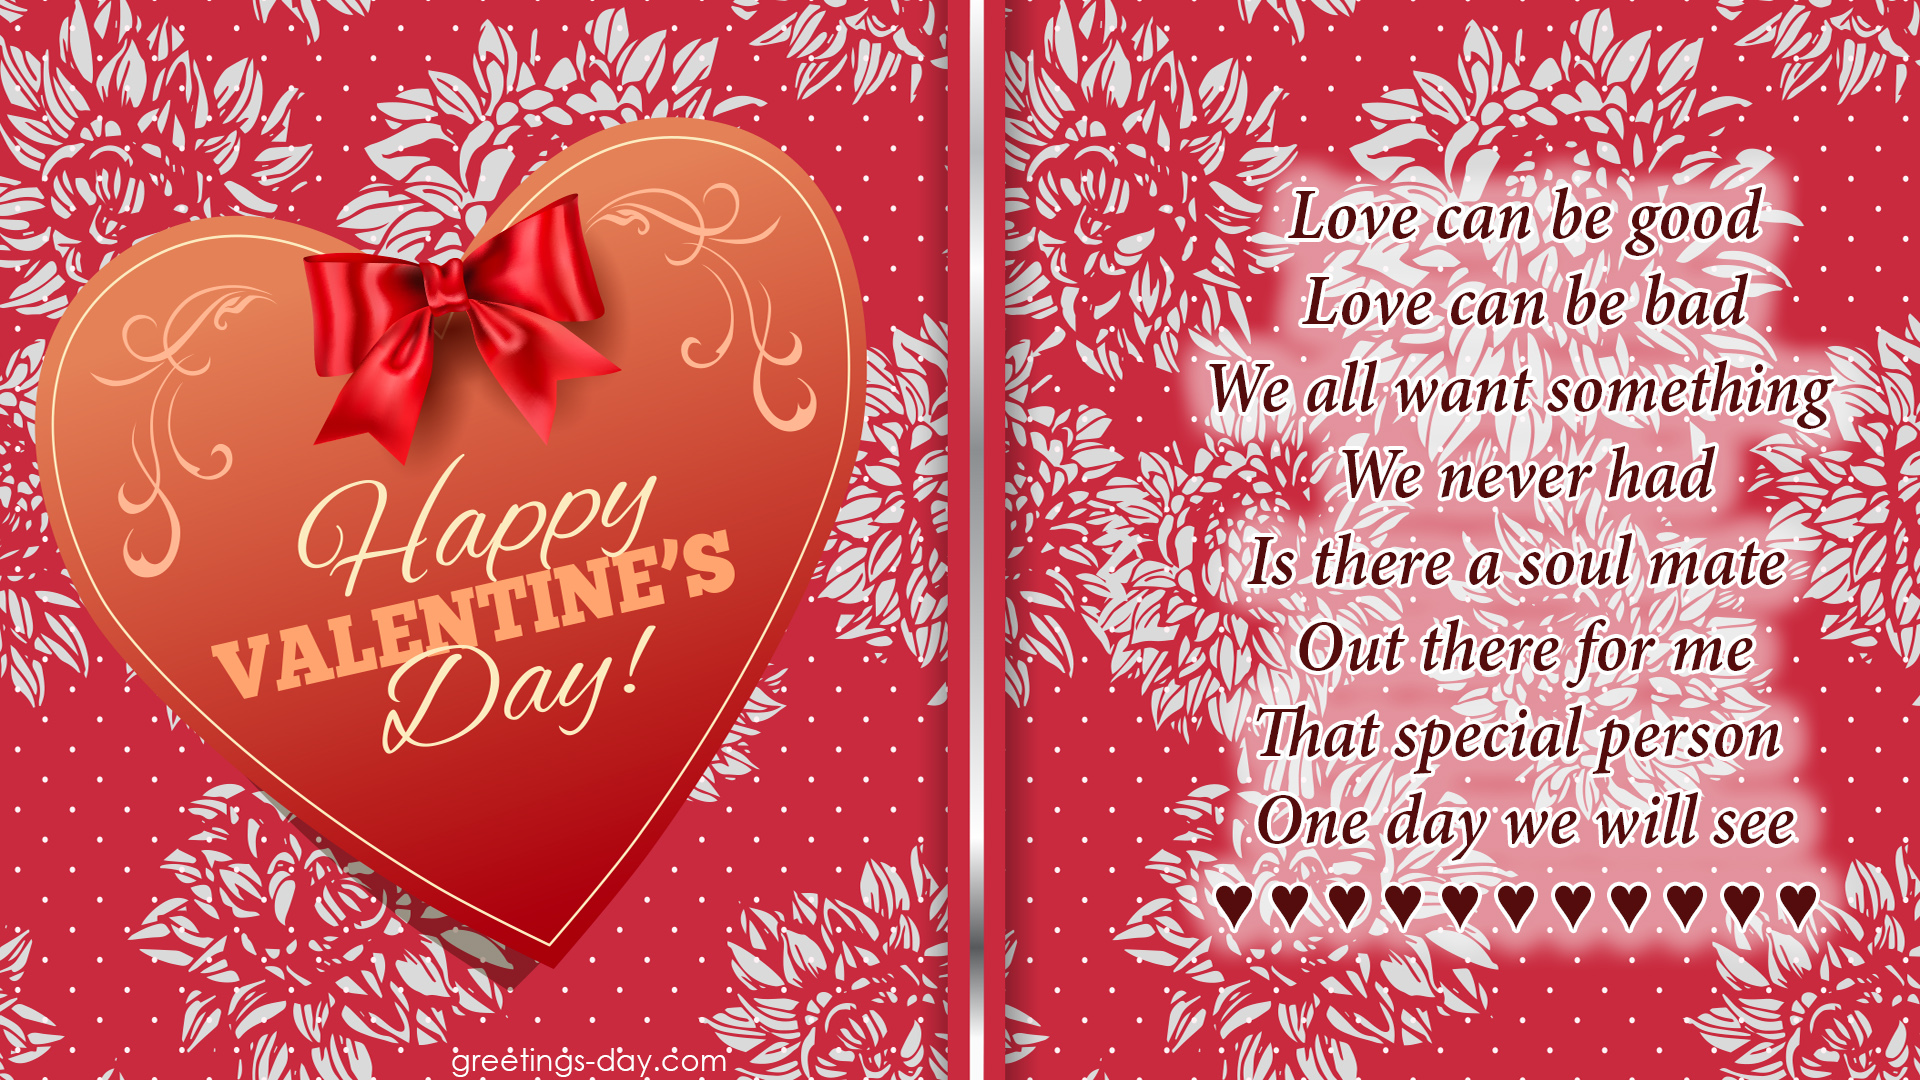 Valentines day greeting cards pictures animated gifs valentines day quotes m4hsunfo Choice Image